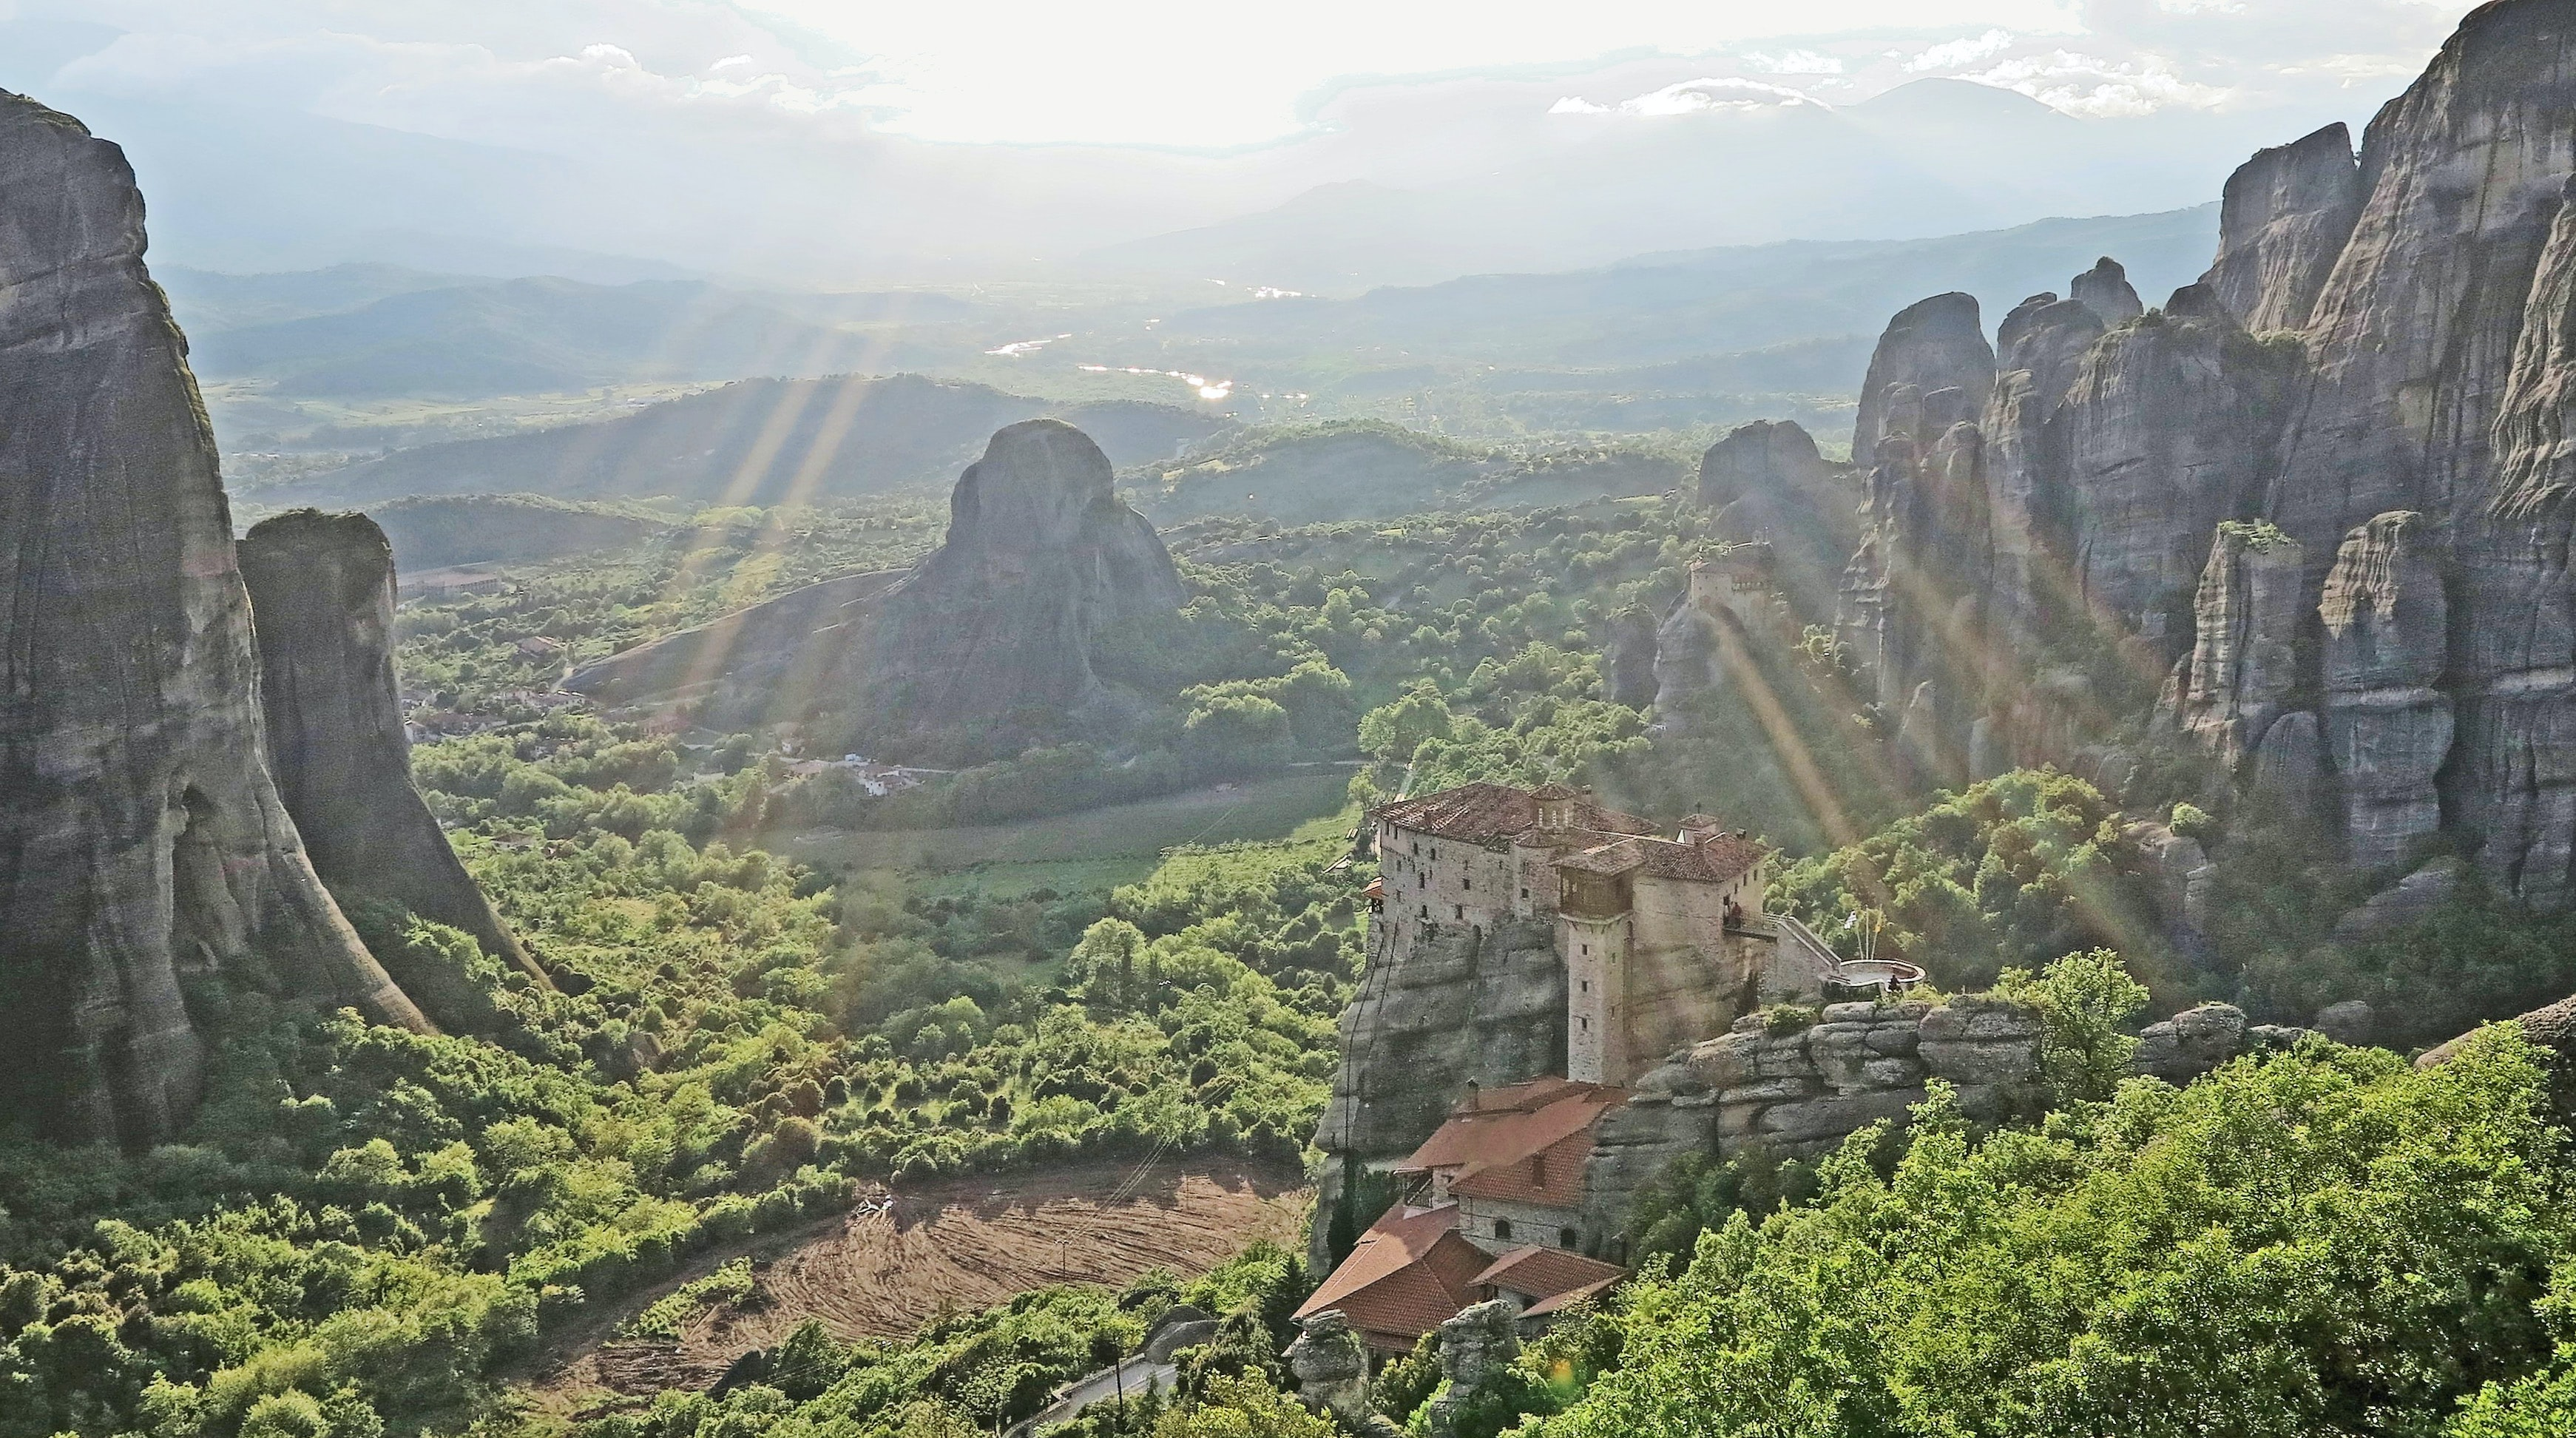 A small castle on the side of a rock formation in Meteora on a bright day